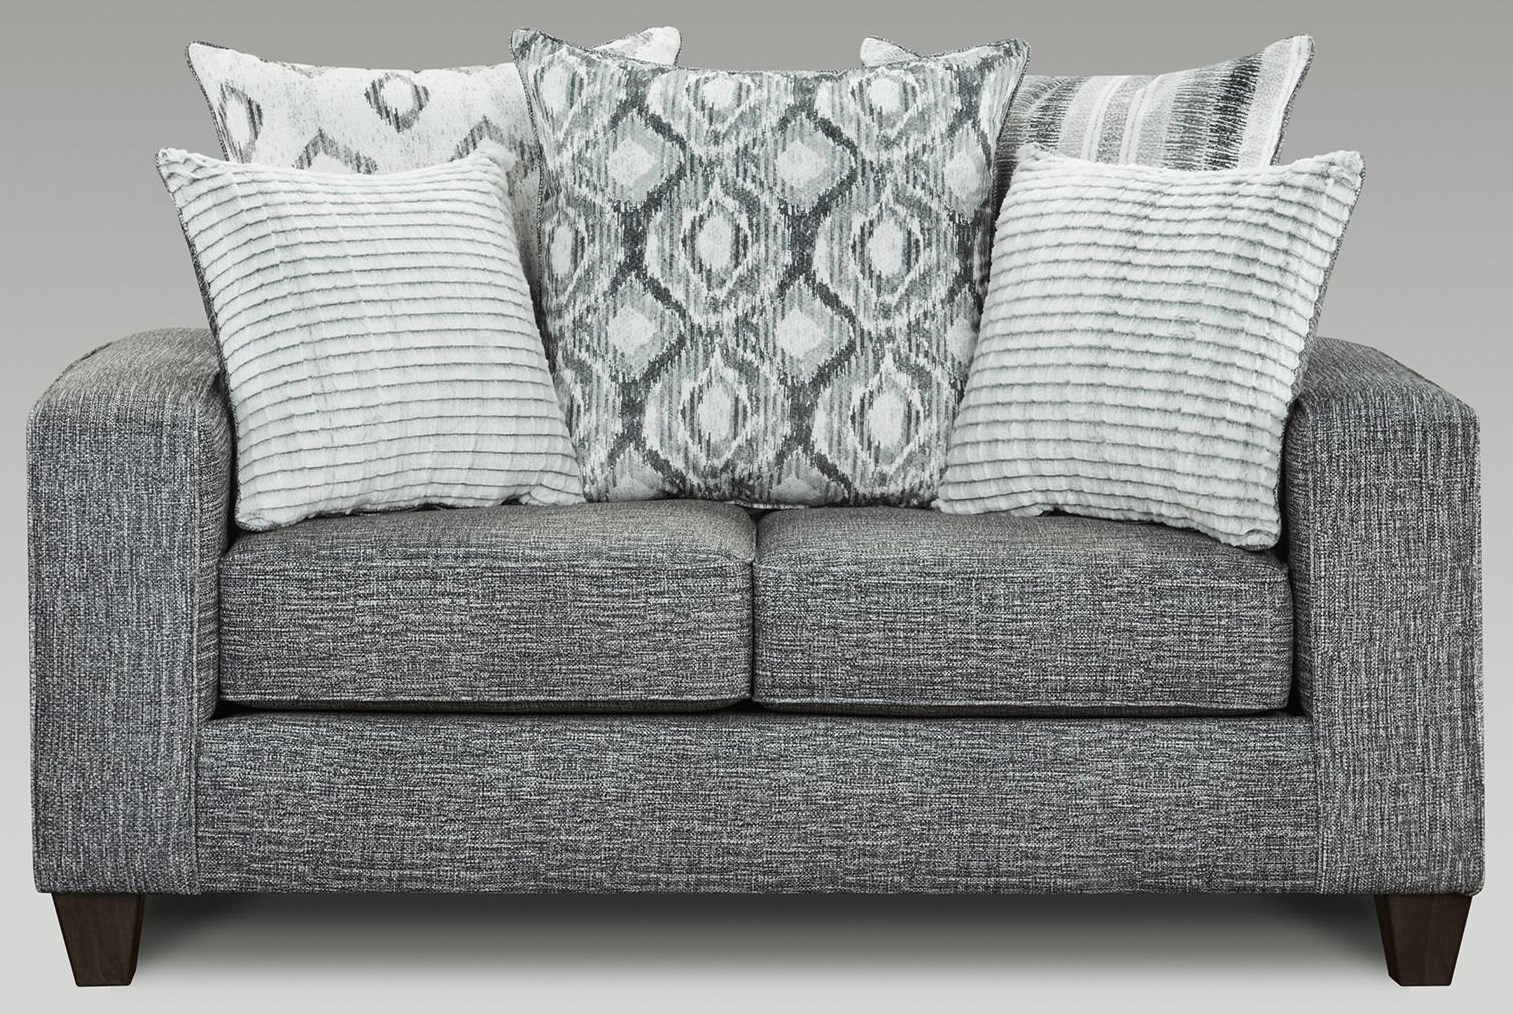 5850 Sectional Contemporary Loveseat by Affordable Furniture at Furniture Fair - North Carolina